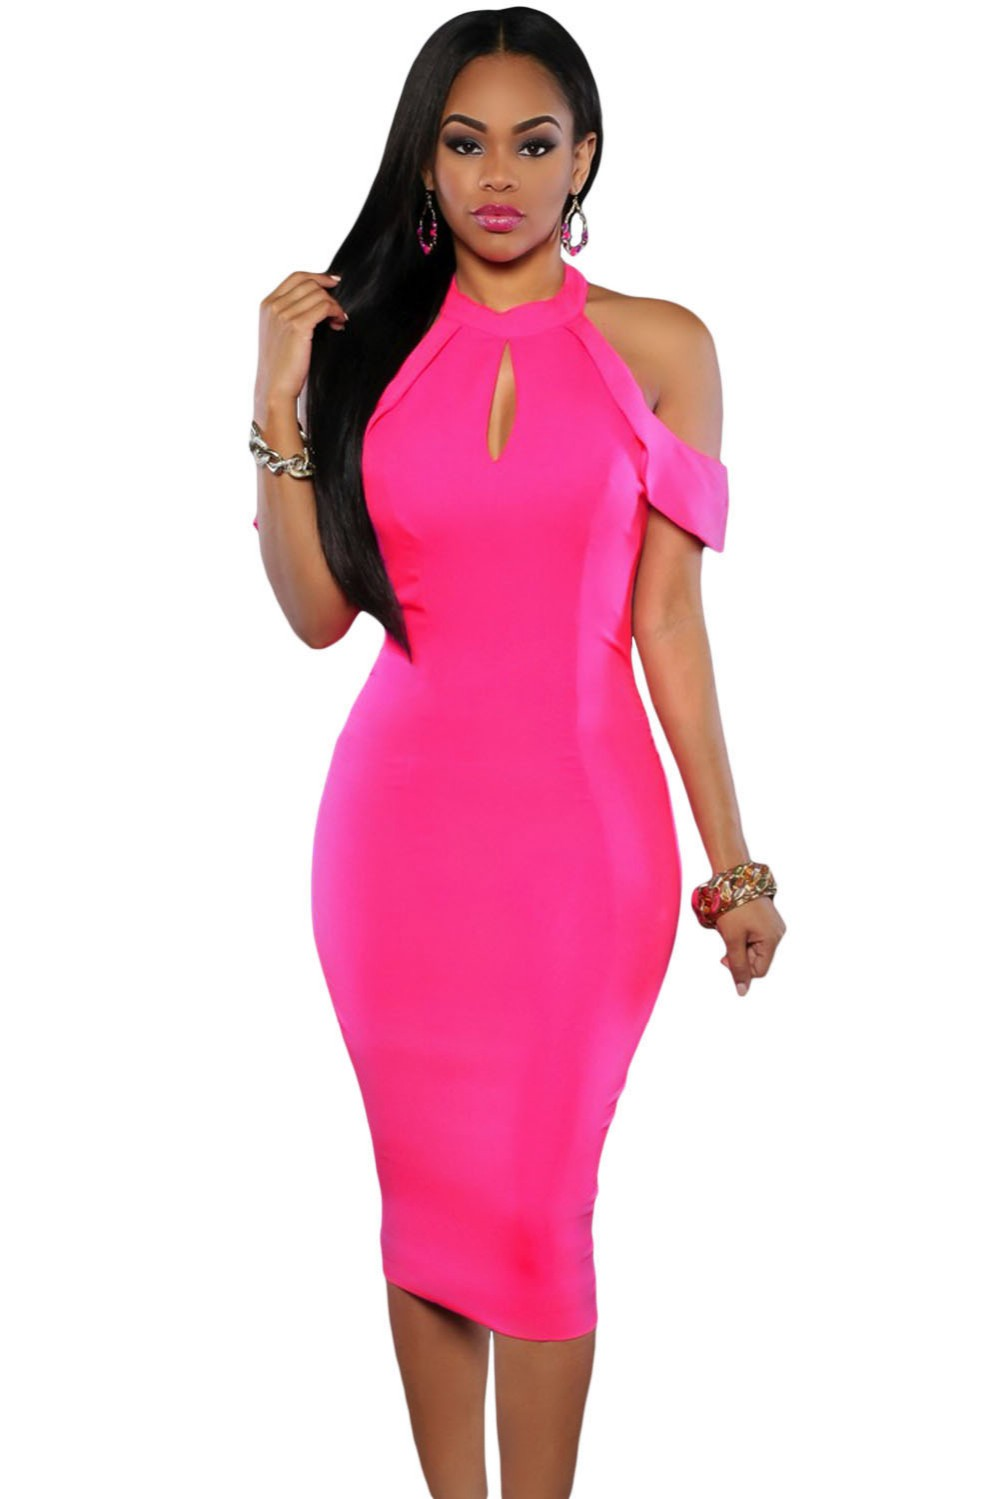 Rosy-Cute-Cold-Shoulder-Cutout-Halter-Midi-Dress-LC61125-6-1